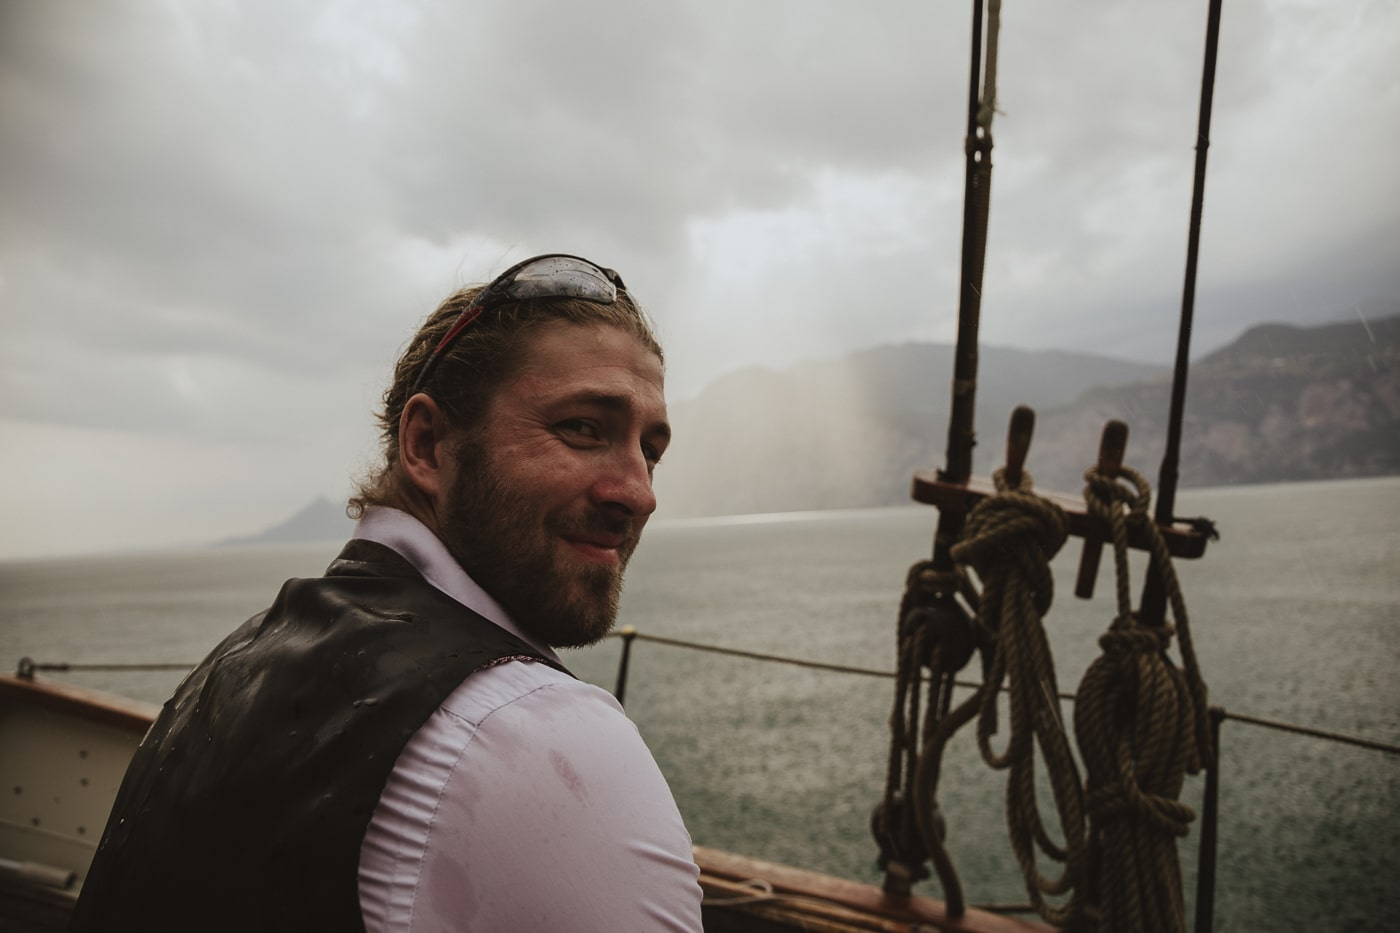 bearded man with sunglasses and a waistcoat in wedding atire sitting aboard a yacht on lake garda italy with ropes and mountains in the background by Joshua Wyborn